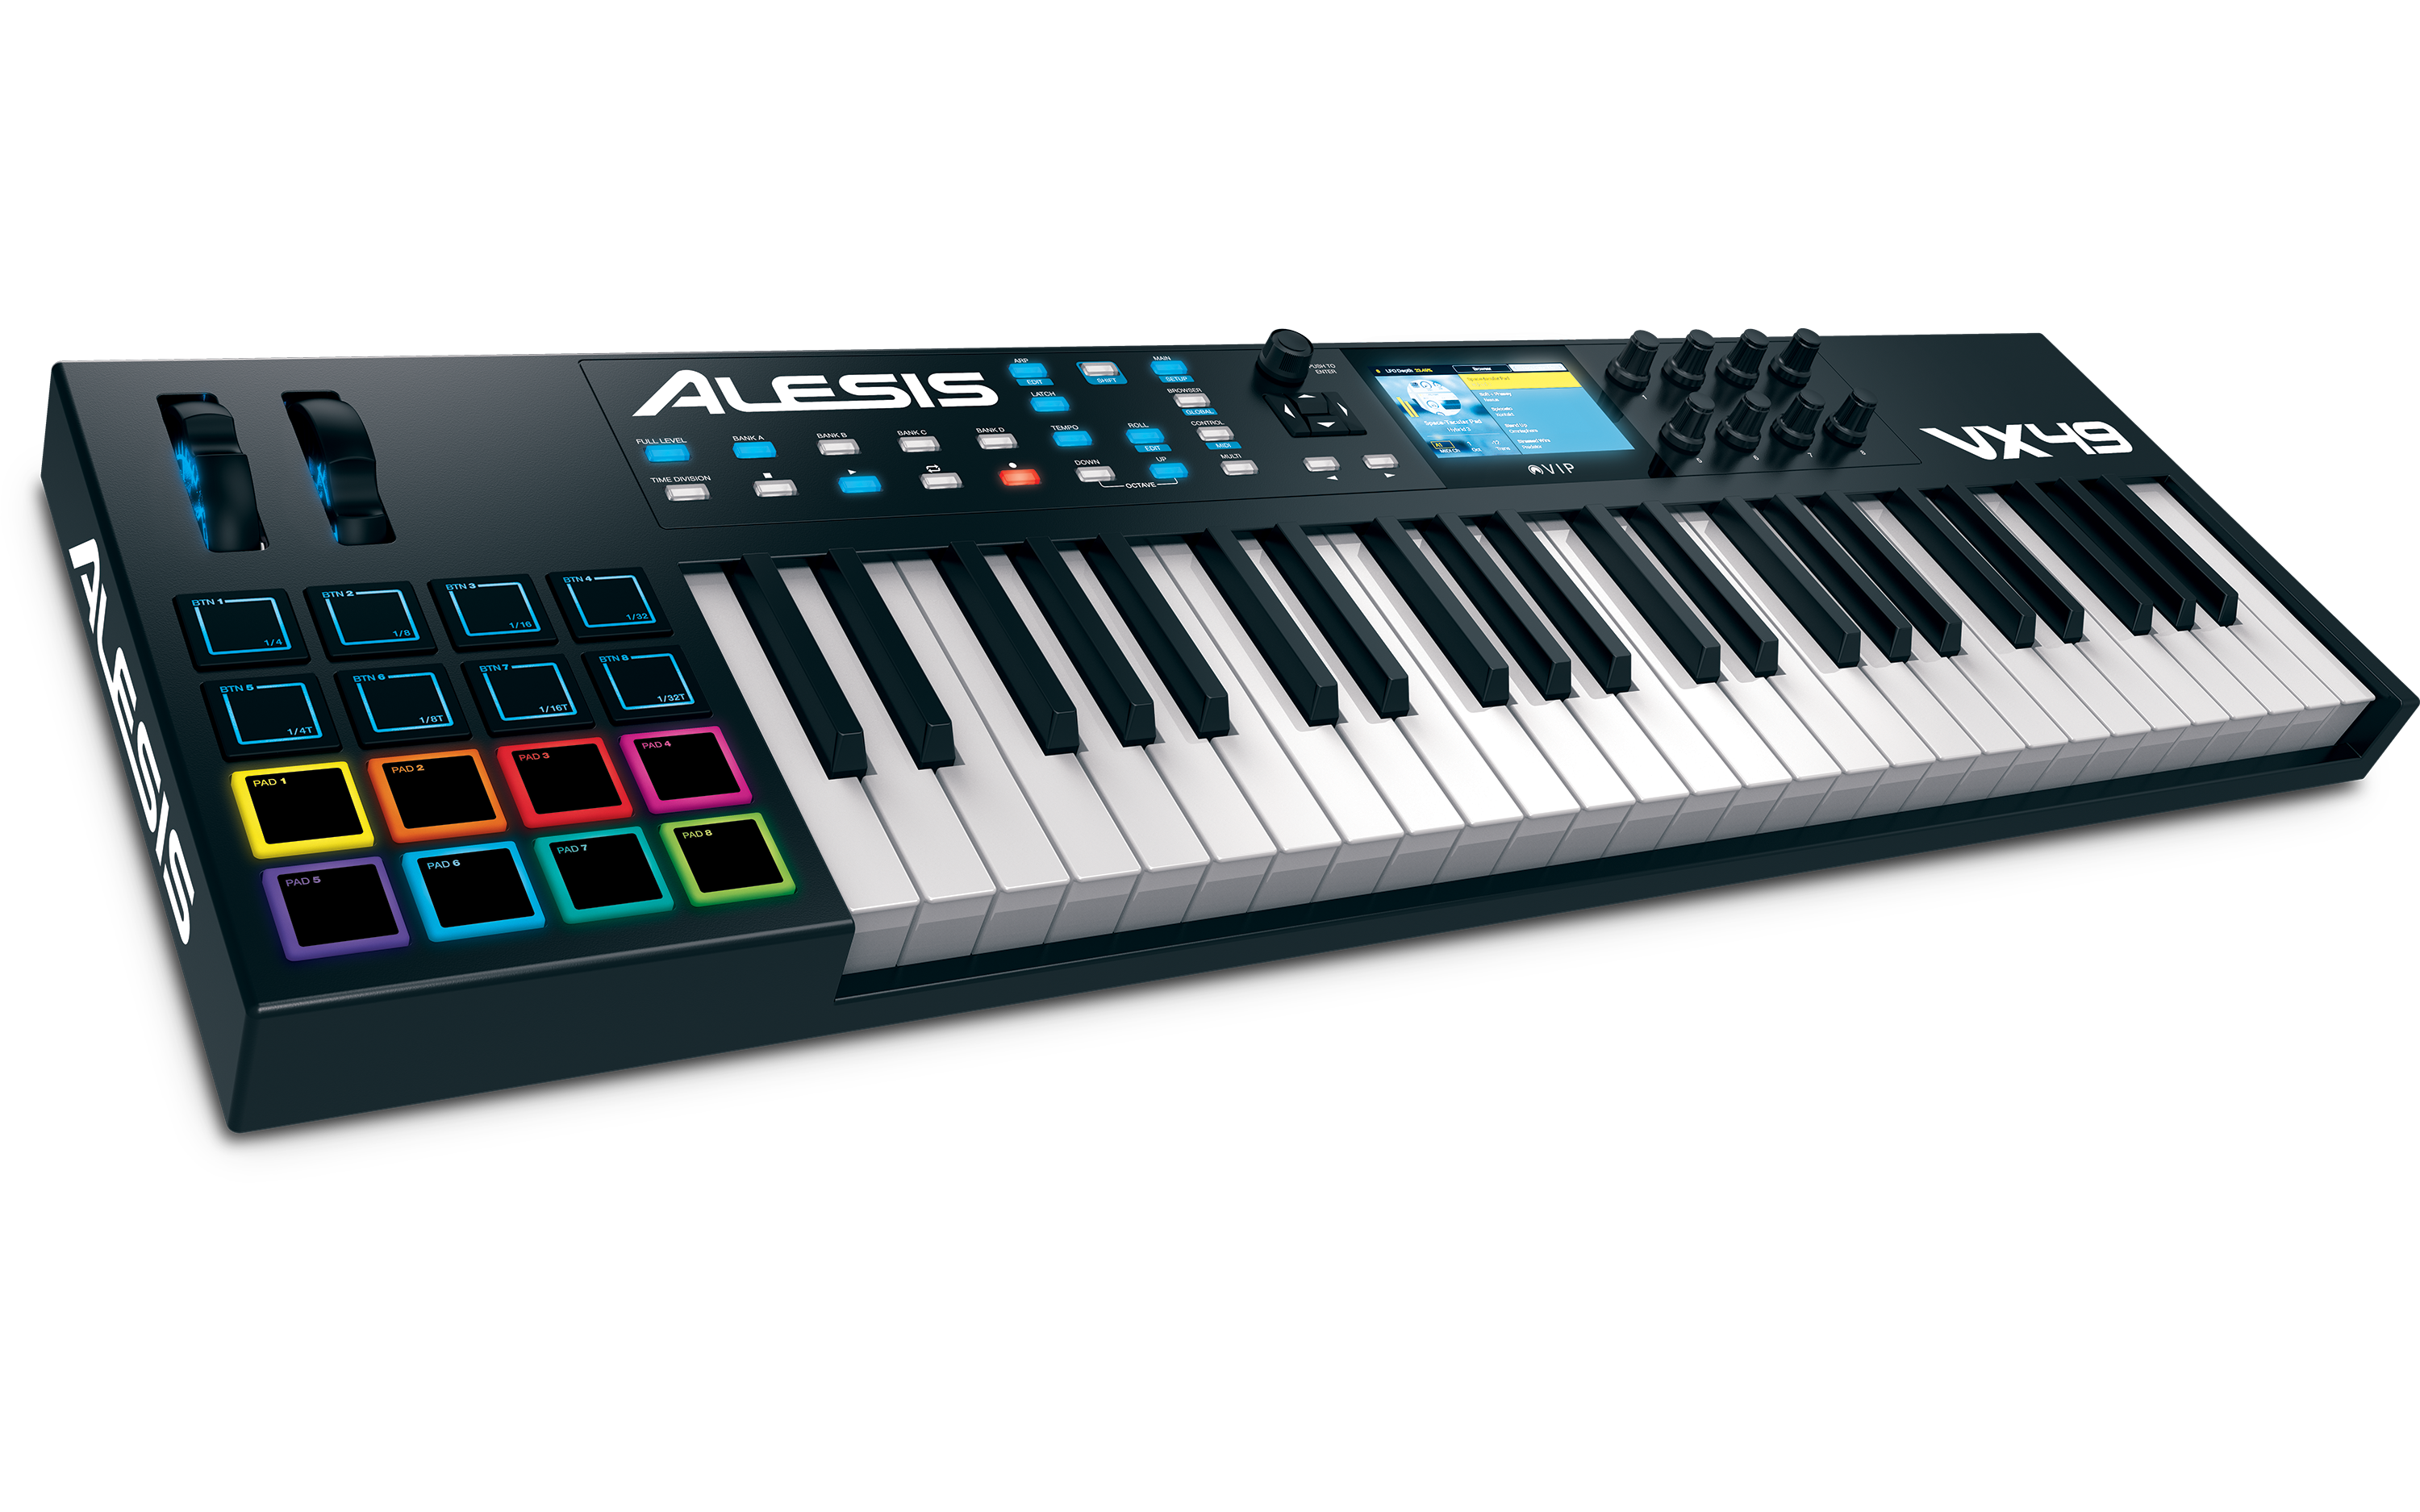 alesis vx49 fully integrated midi controller keyboard routenote blog. Black Bedroom Furniture Sets. Home Design Ideas